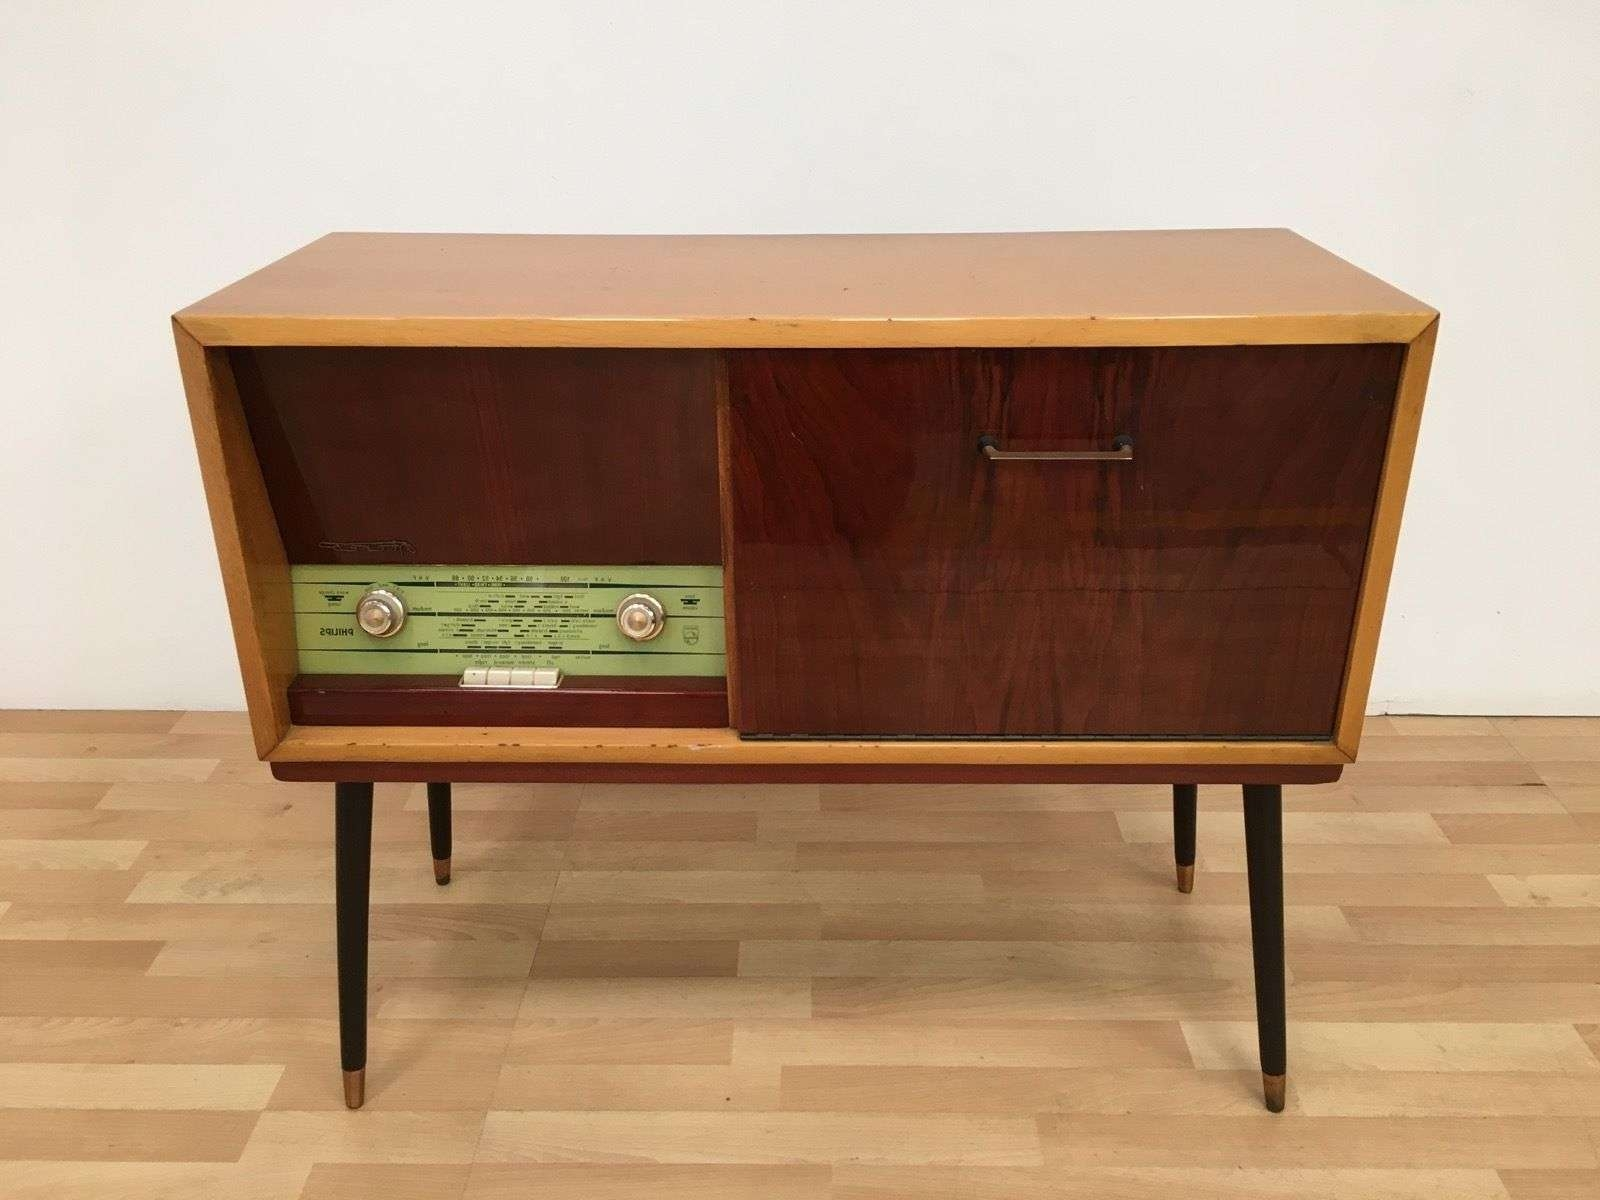 Vintage Retro Mid Century 50S 60S Philips Stereo Radiogram With Regard To 50S Sideboards (View 19 of 20)